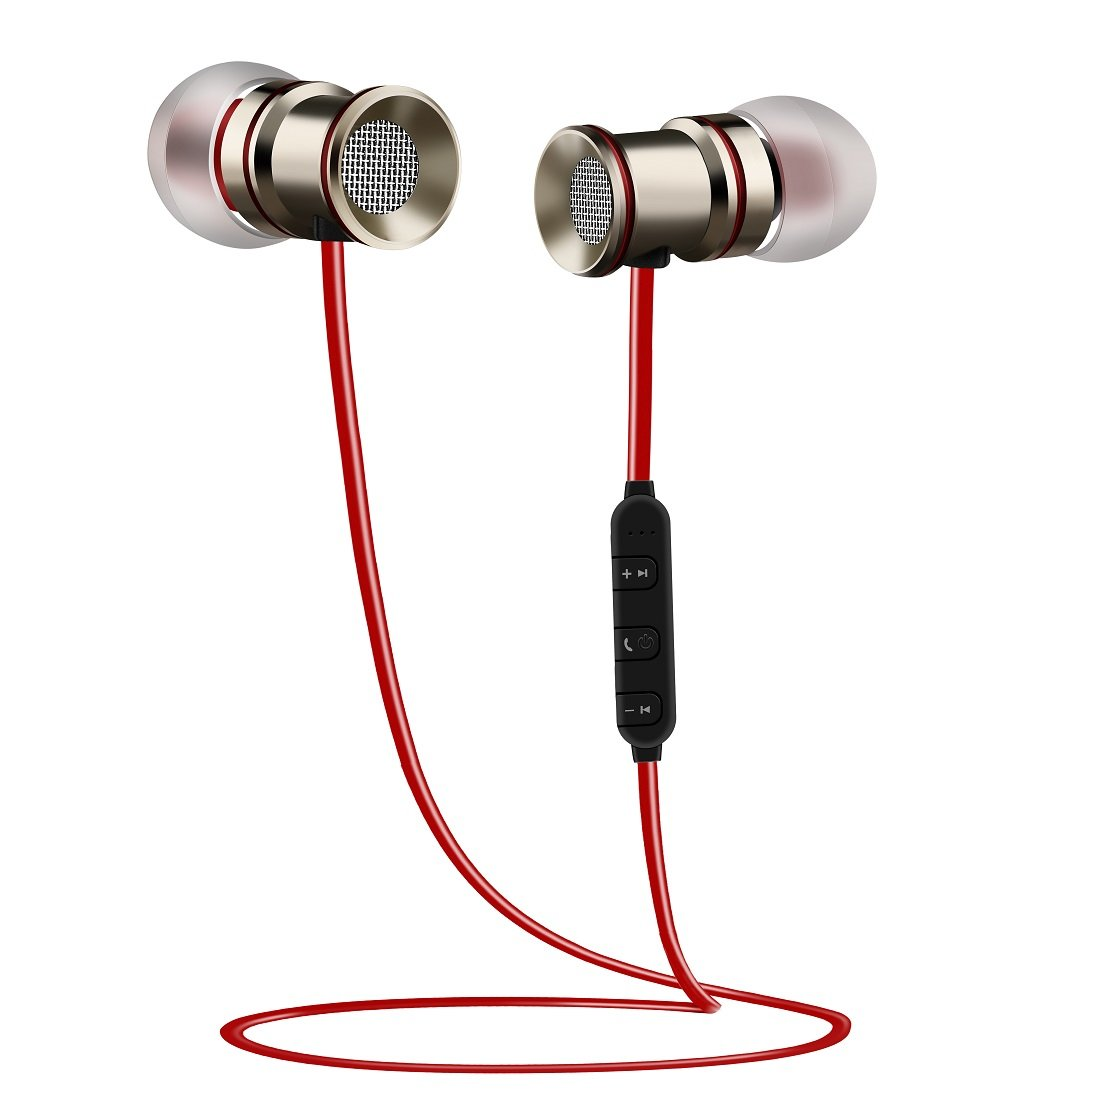 Bluetooth Headphones Wireless Bluetooth Earphone,Bluetooth Earphone Sports 4.1 Lightweight HD Noise Cancelling In Ear Headset with Microphone for iPhone Samsung and Bluetooth Devices